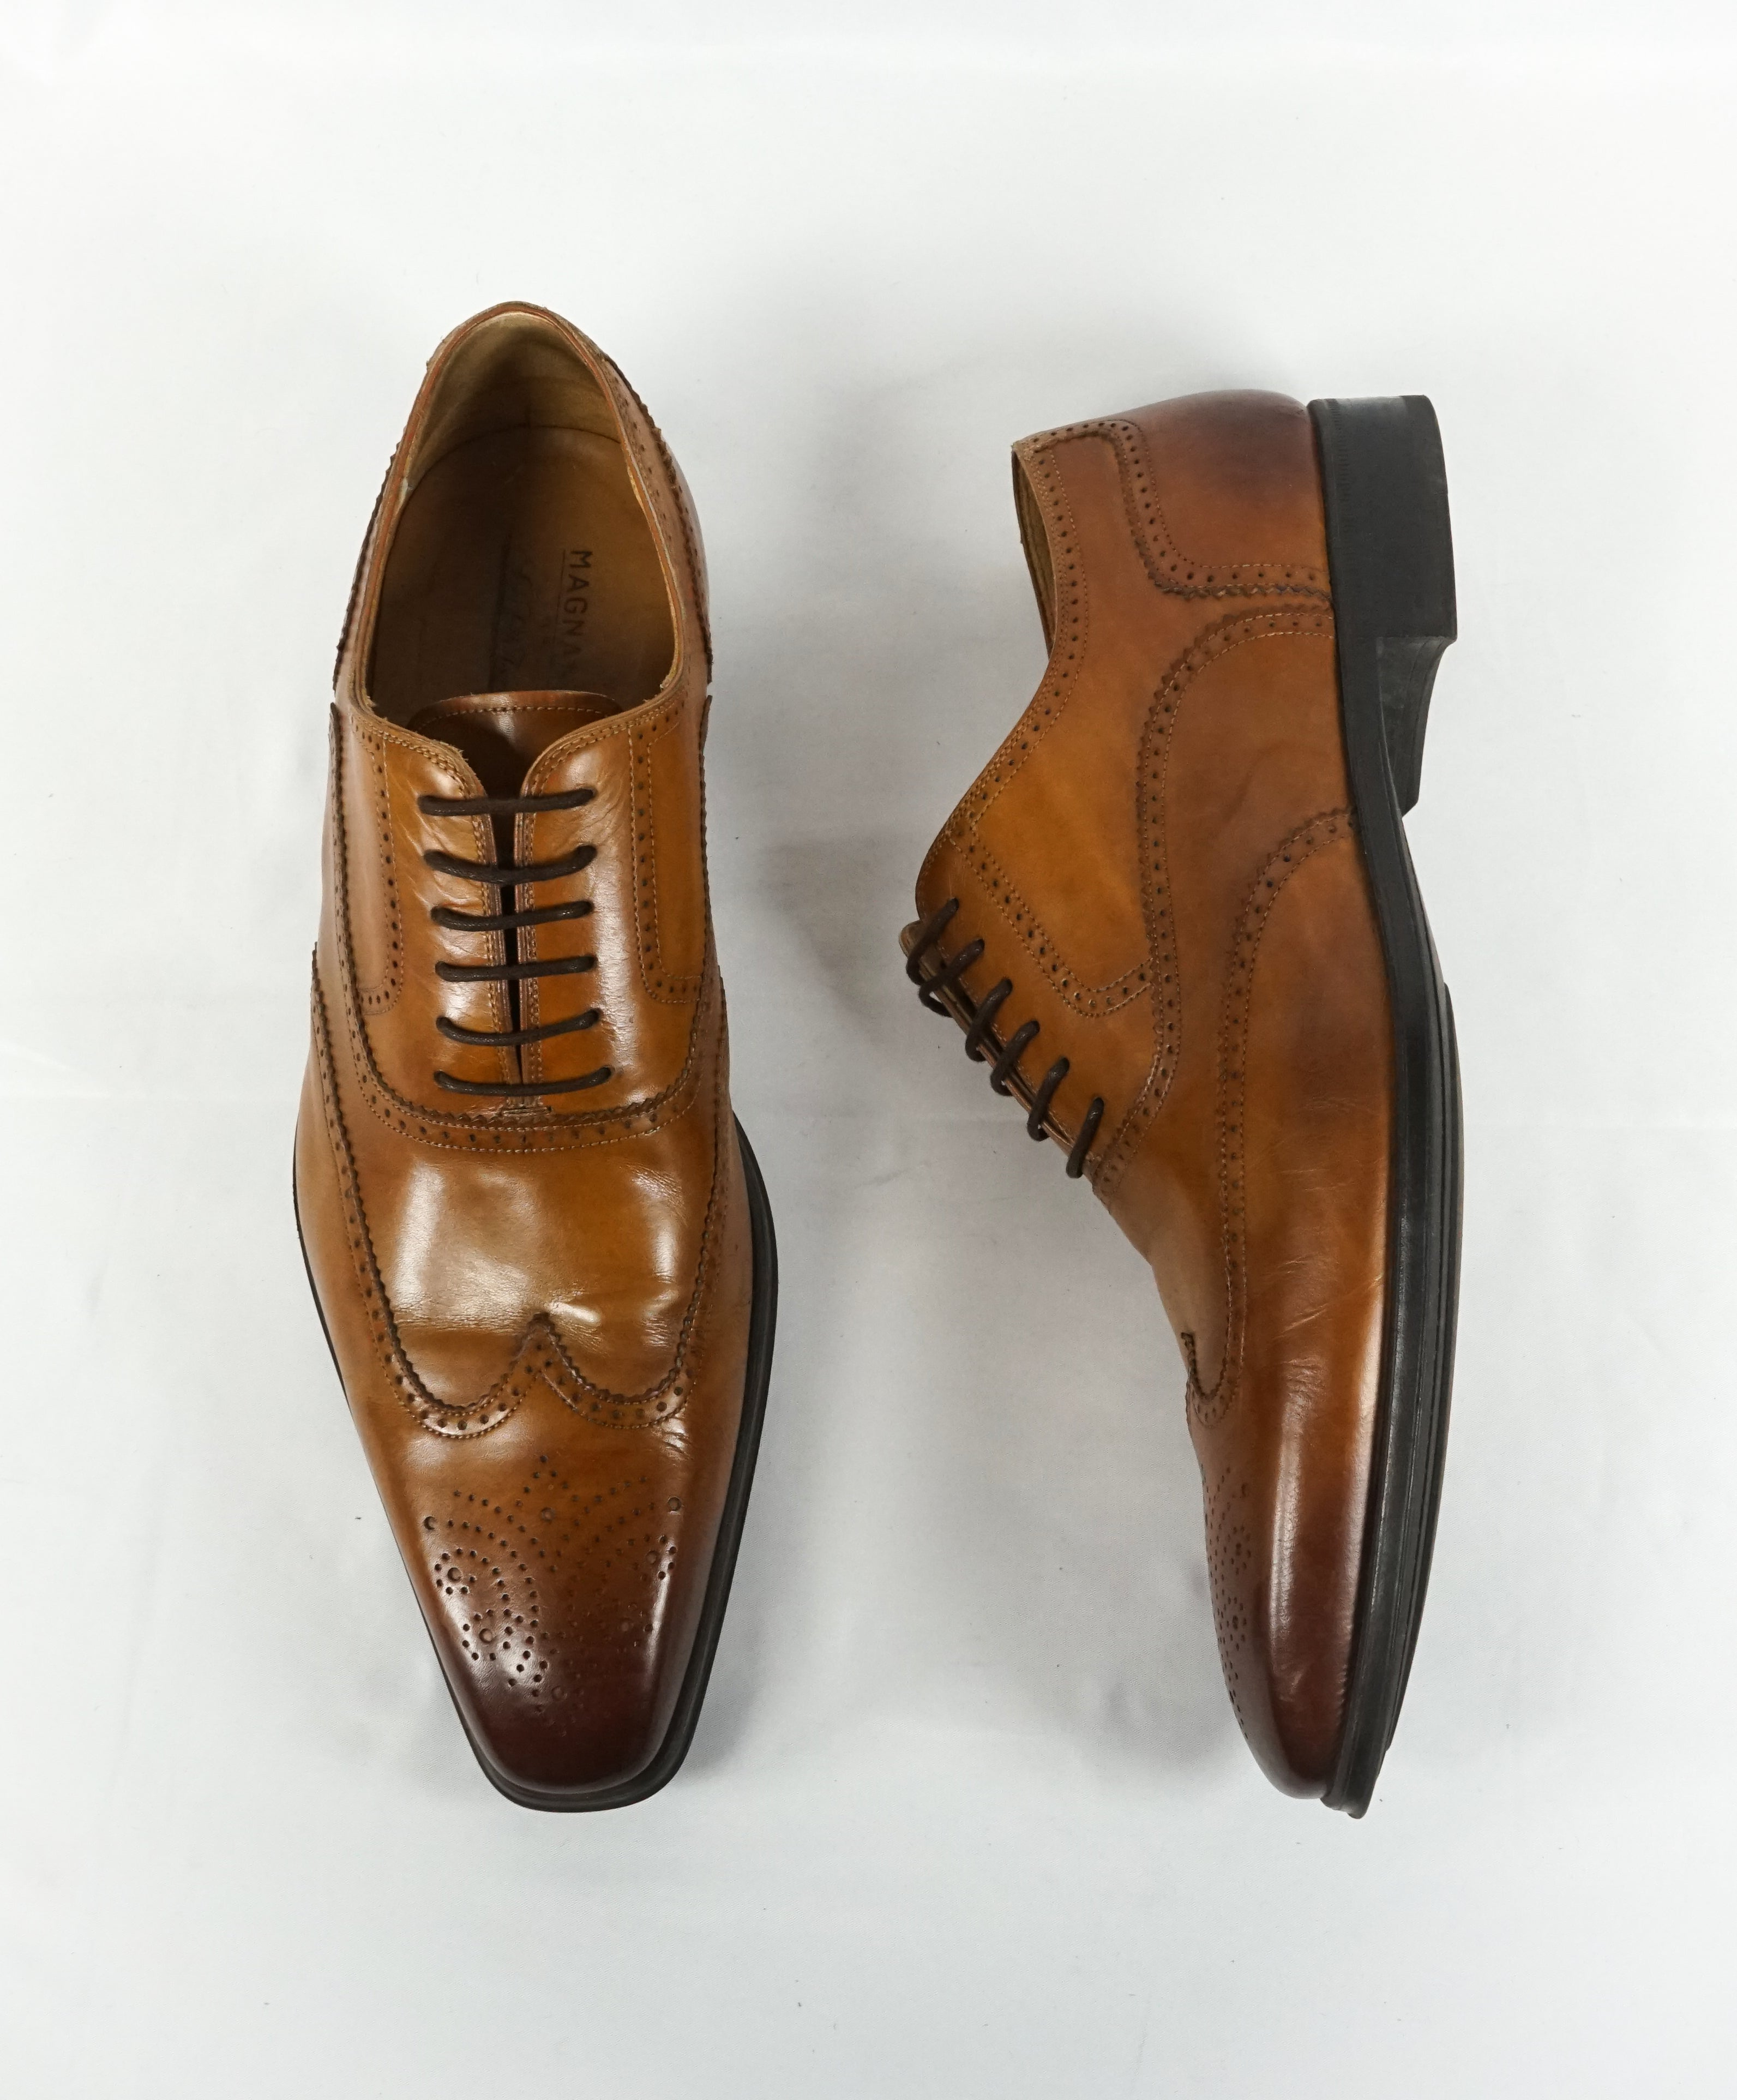 MAGNANNI - Brown Burnt Tips Wingtip Brogue Oxfords - 11.5